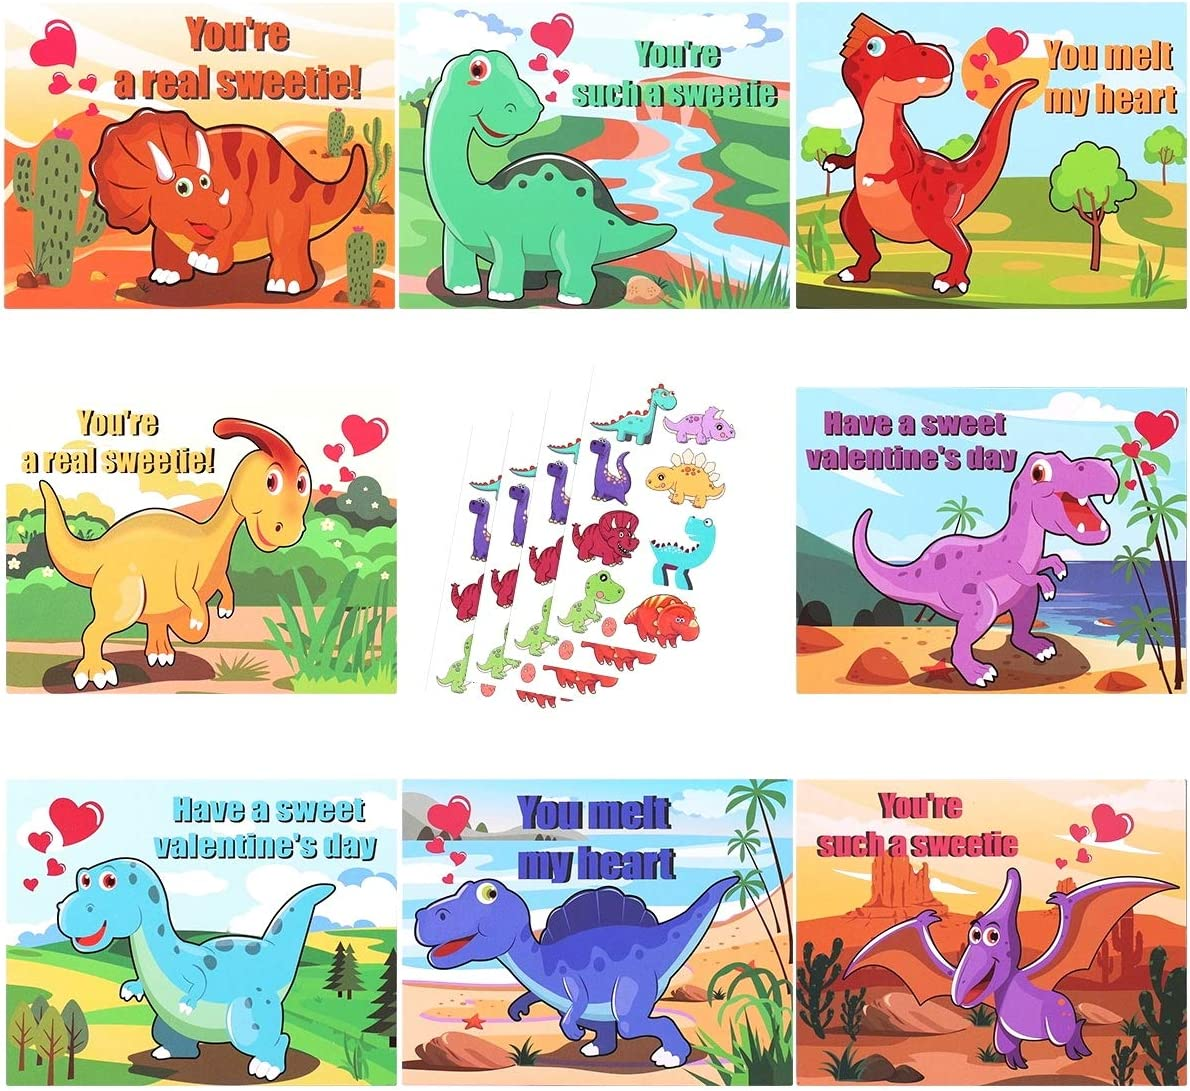 MAOYUE 32 Pcs Valentines Cards for Kids Valentine Cards 8 Patterns Dinosaur Cards with Temporary Tattoos Scratch and Sniff Scents Valentines Day Cards for Kids, Classroom, Envelopes Included